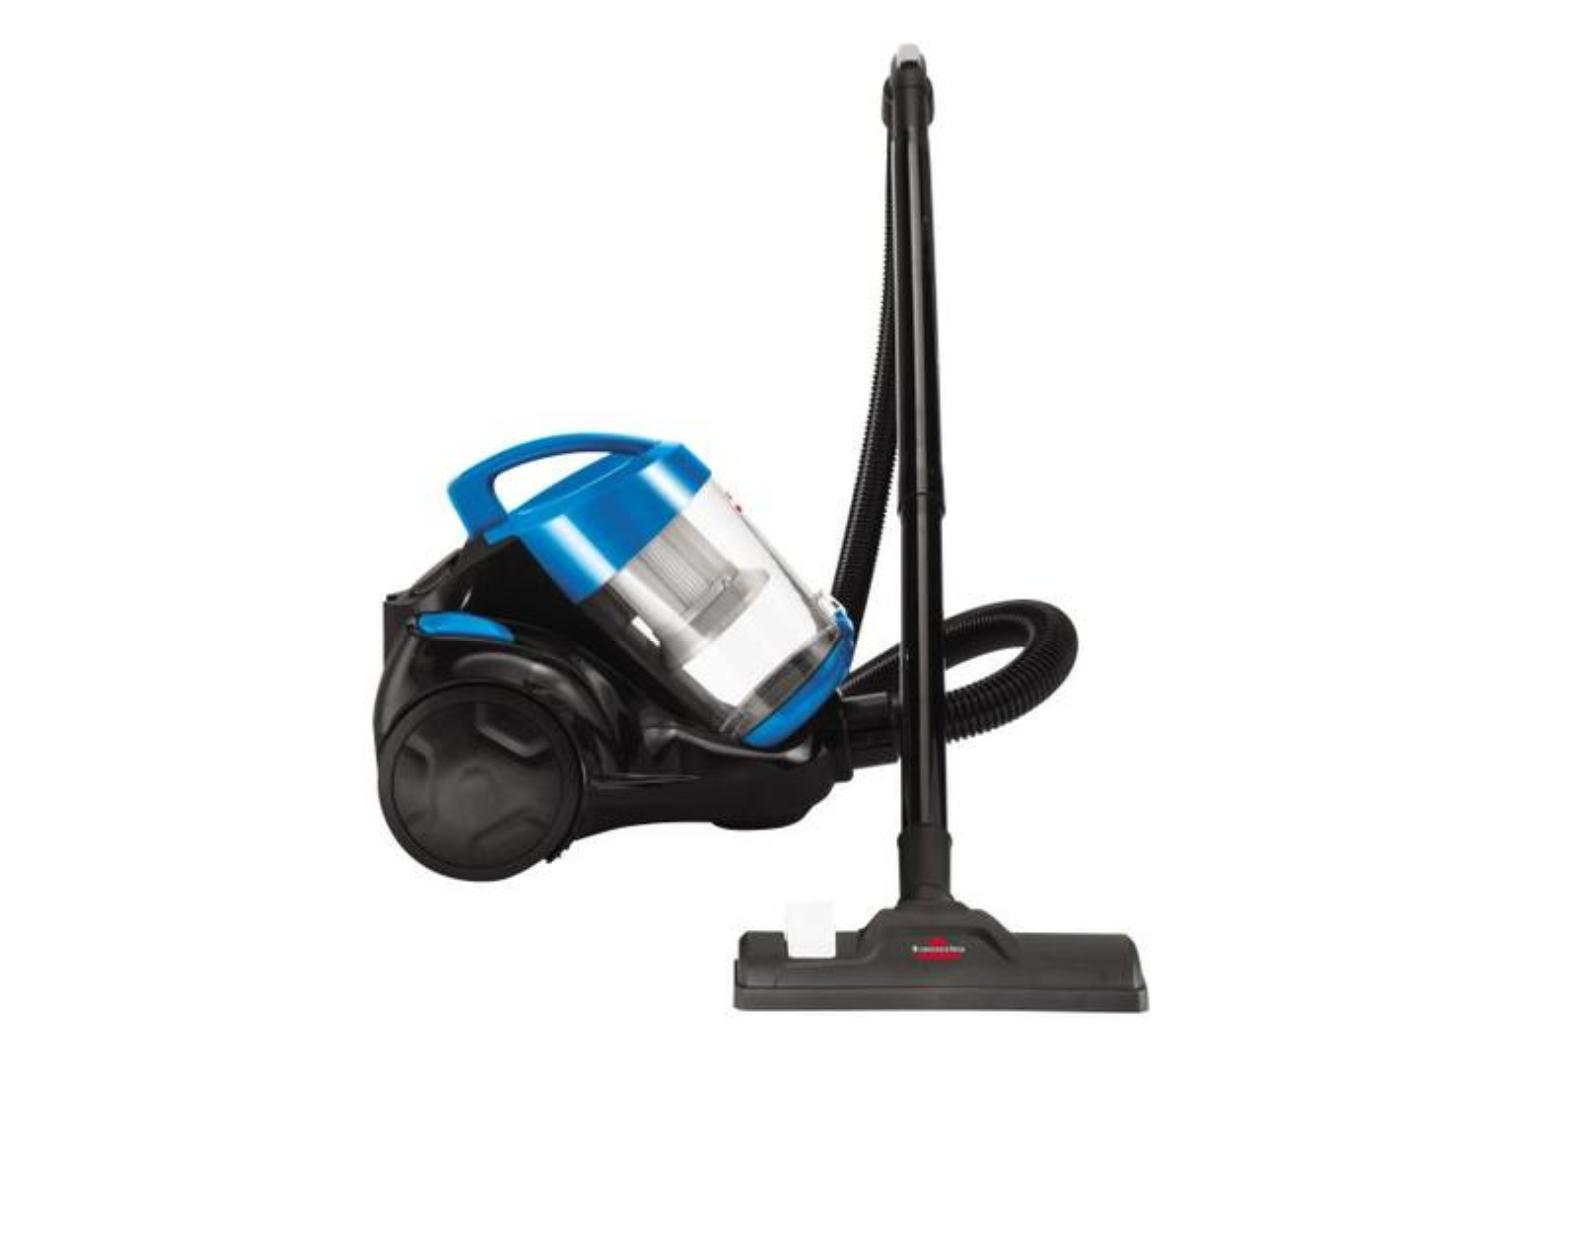 zing bagless canister vacuum cleaner 2156 new